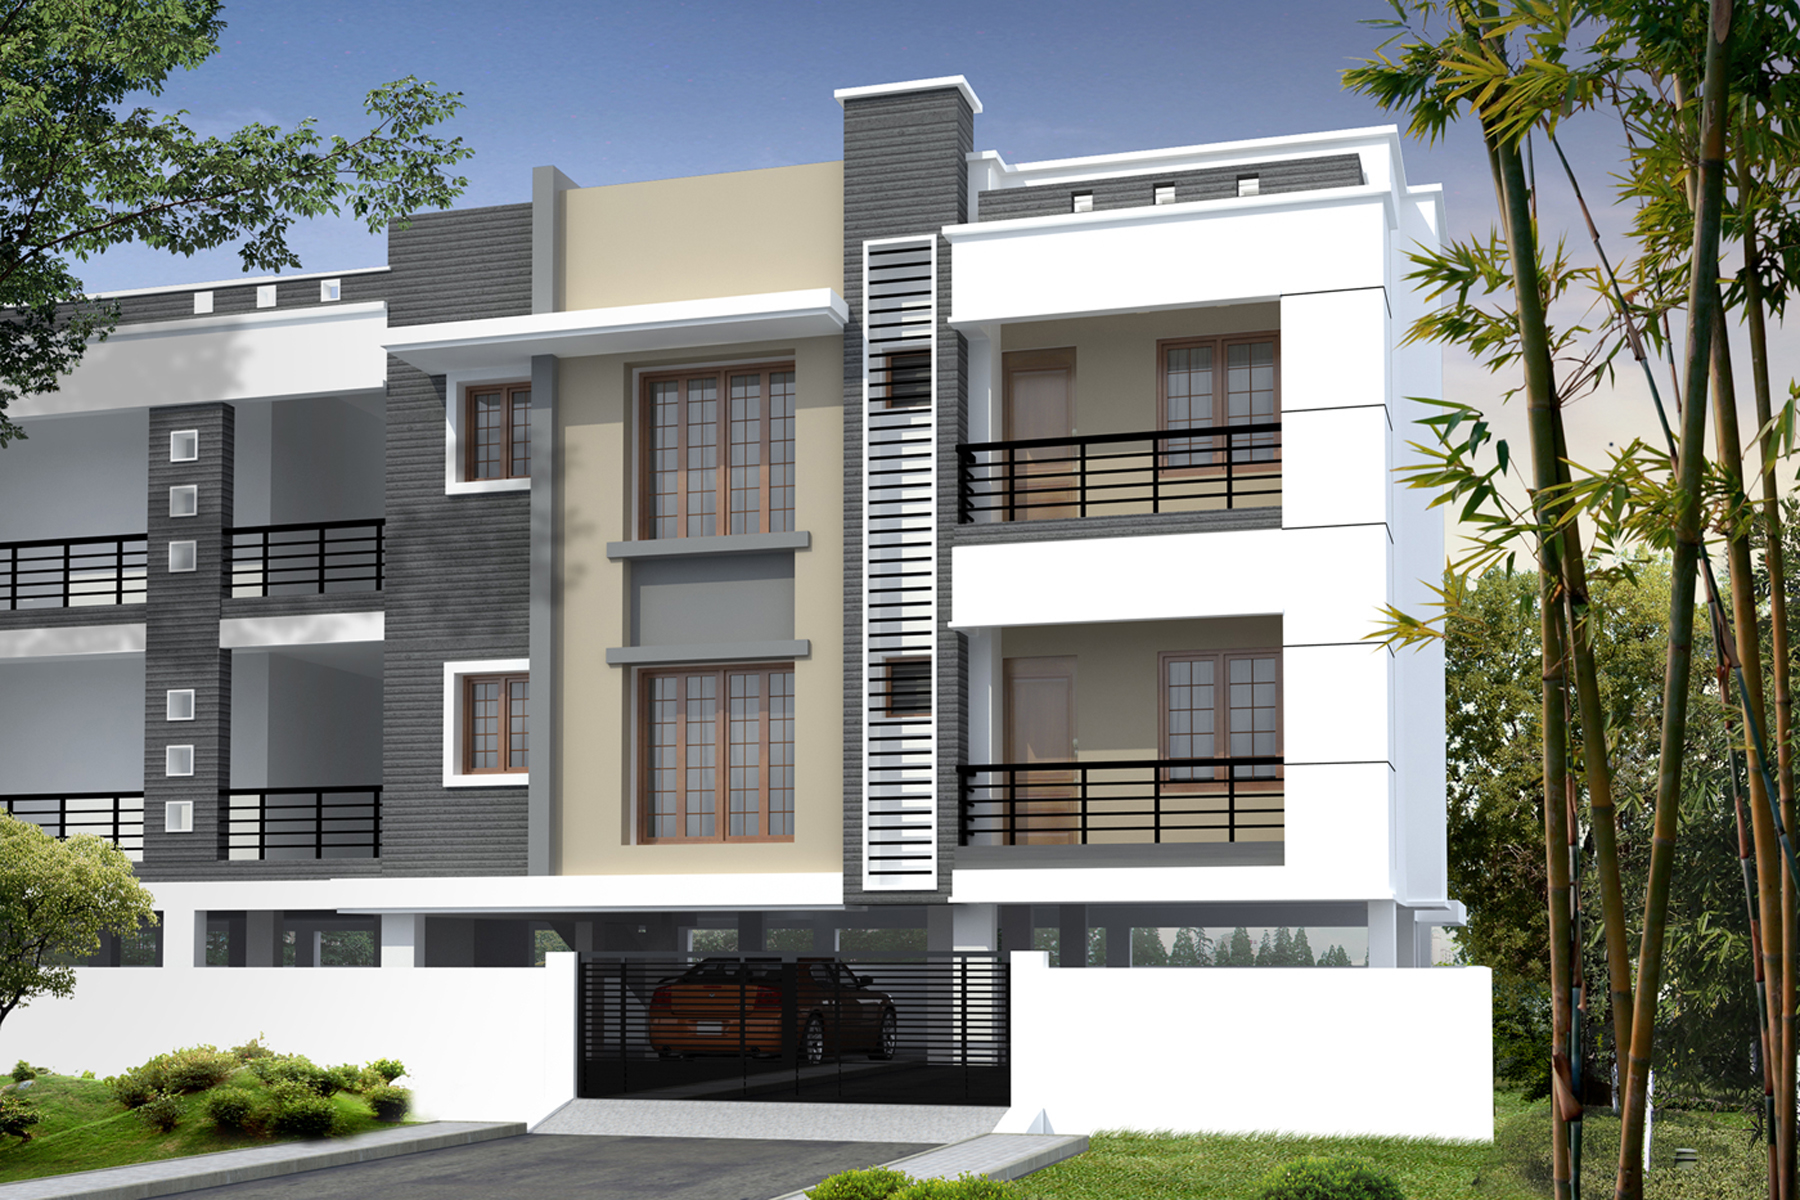 2 bhk flat for sale in puzhuthivakkam, chennai